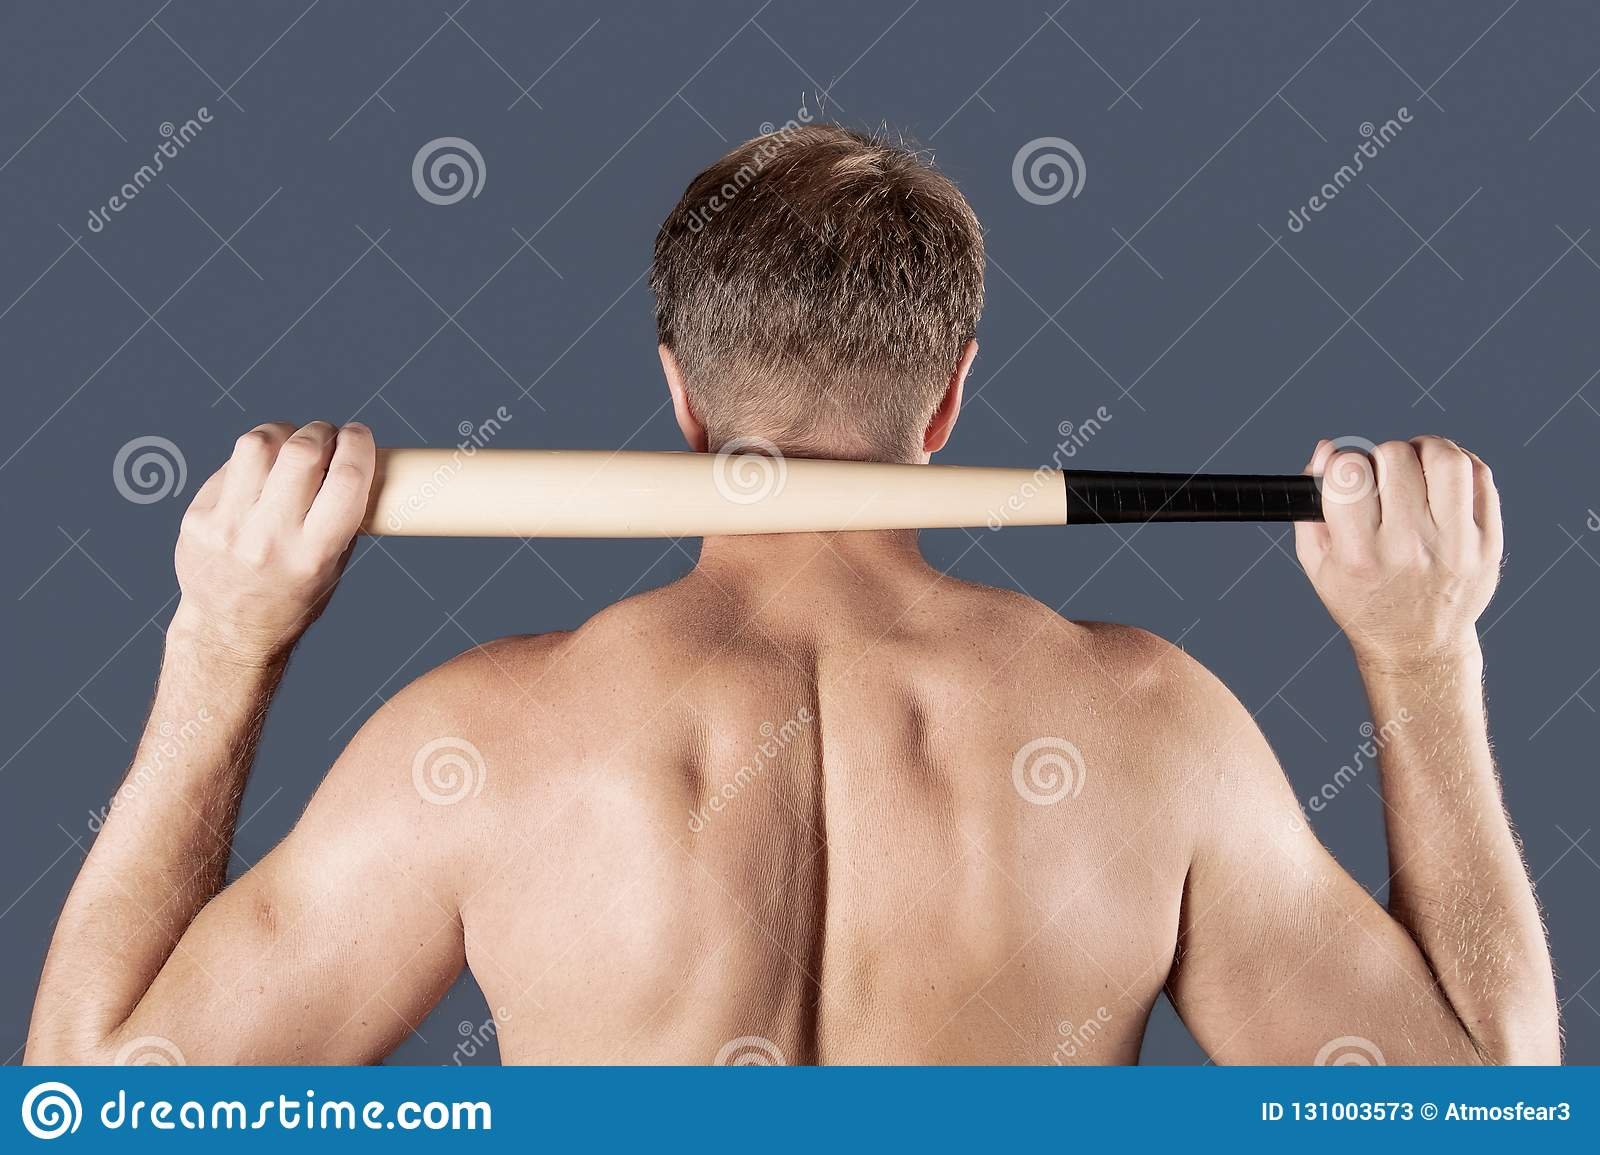 Shirtless man holds on his shoulders a baseball bat over blue background